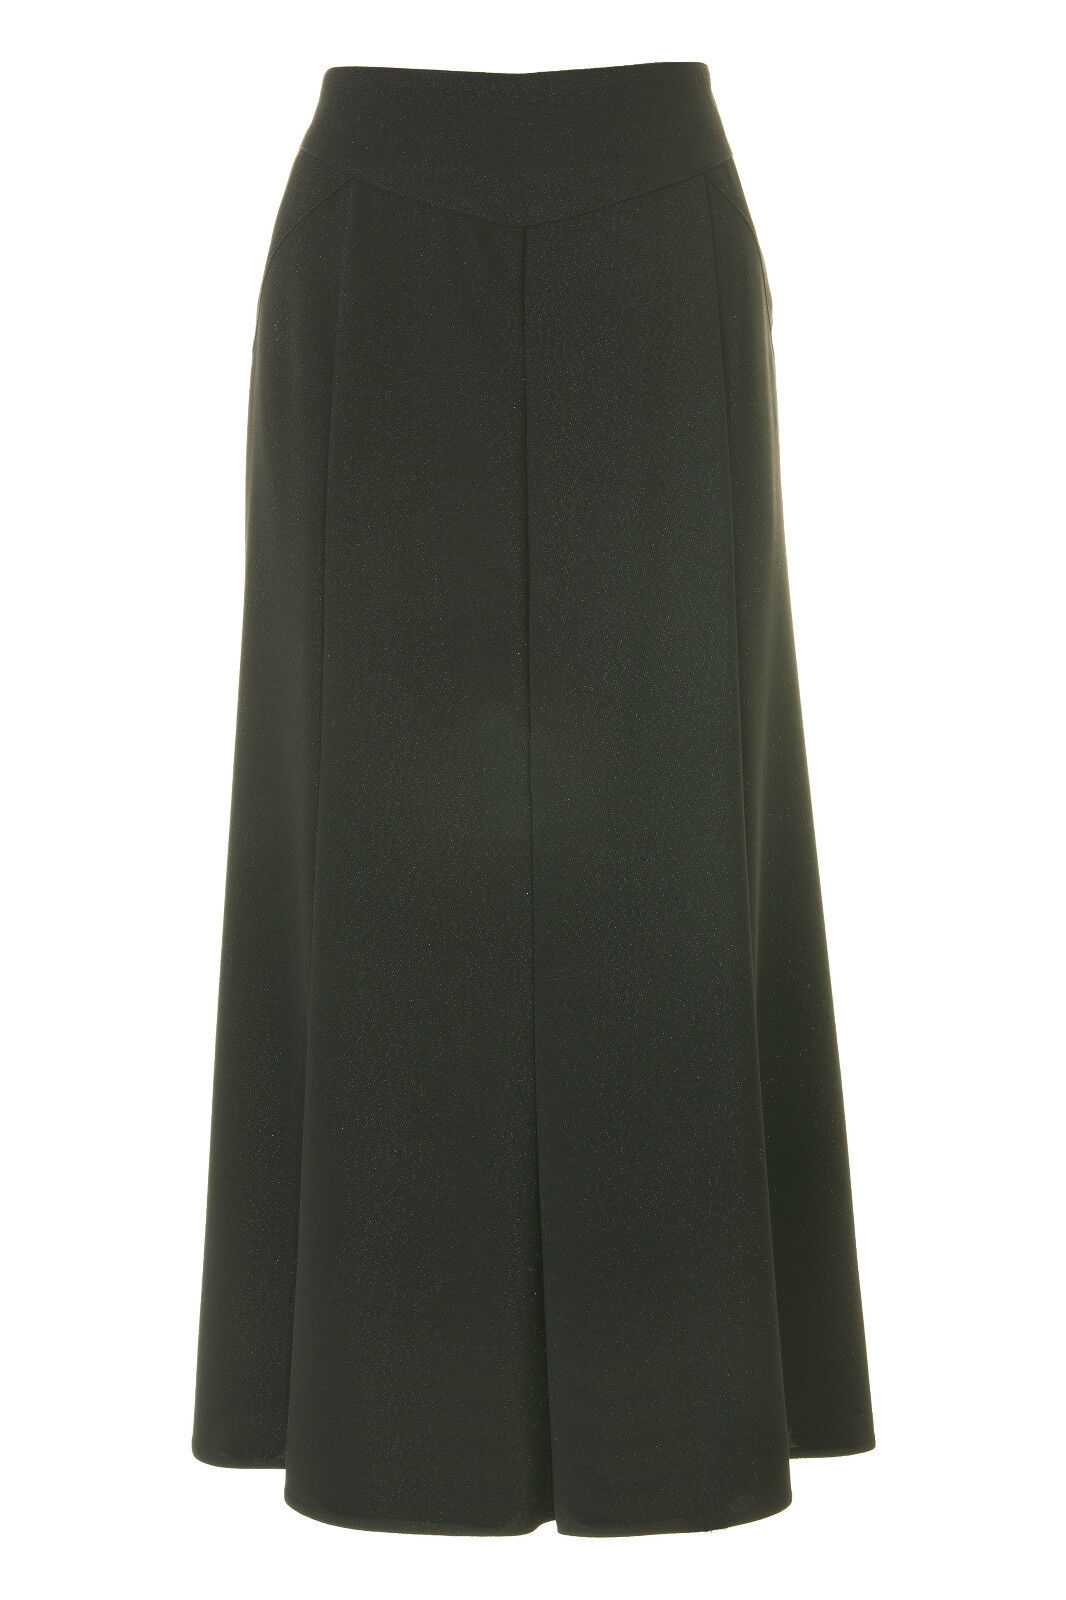 Busy Sparkle Black Long Flared Skirt